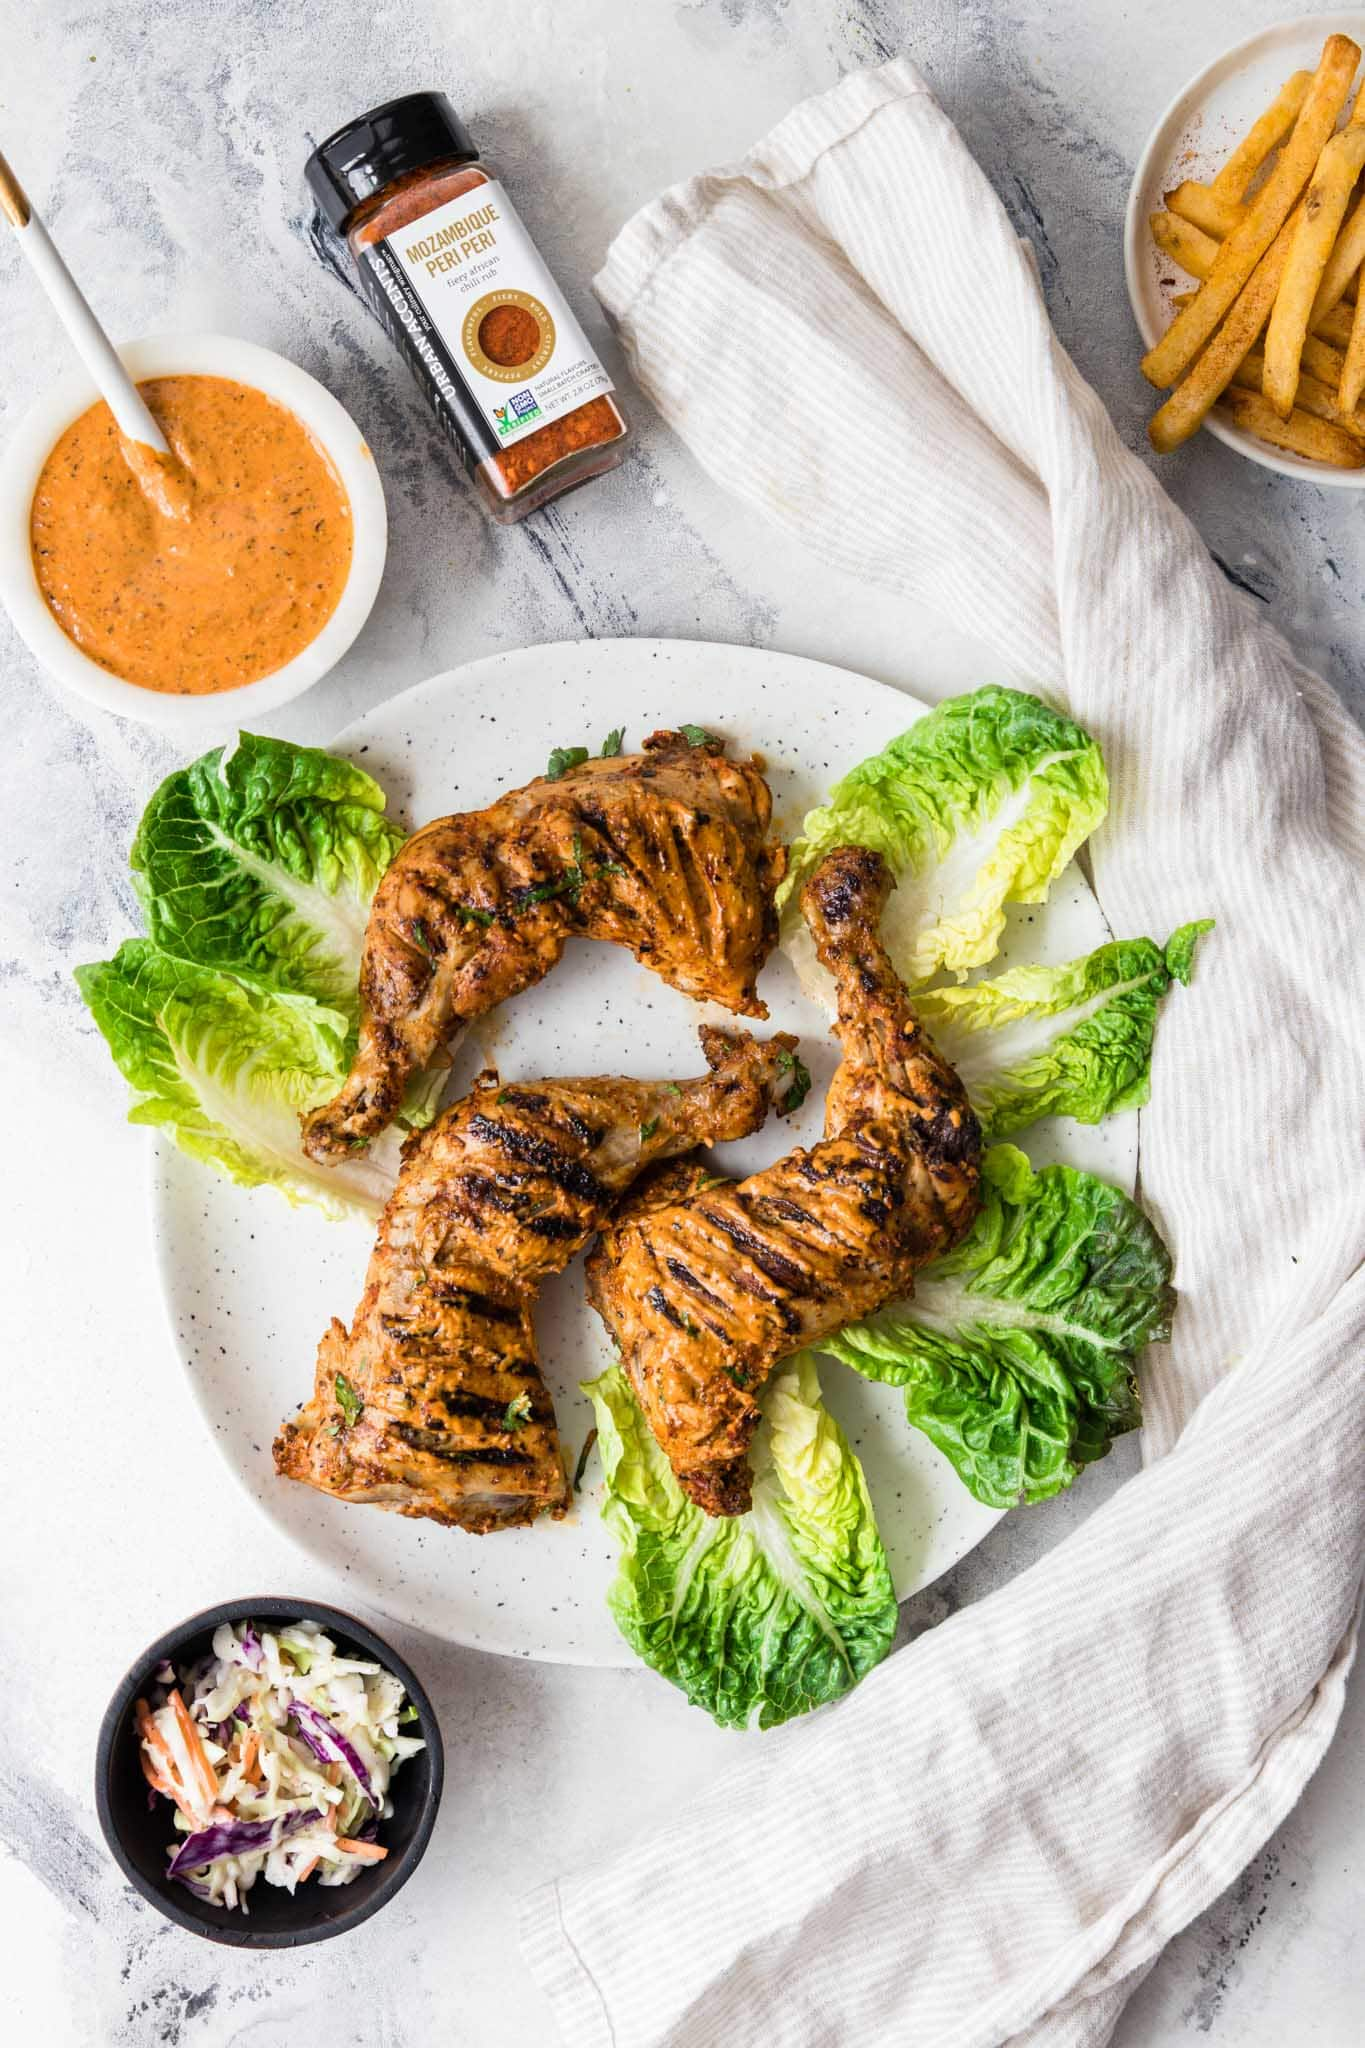 Tender Homemade Peri Peri Chicken on a round speckled plate with lettuce and a bowl of peri peri sauce on the side.